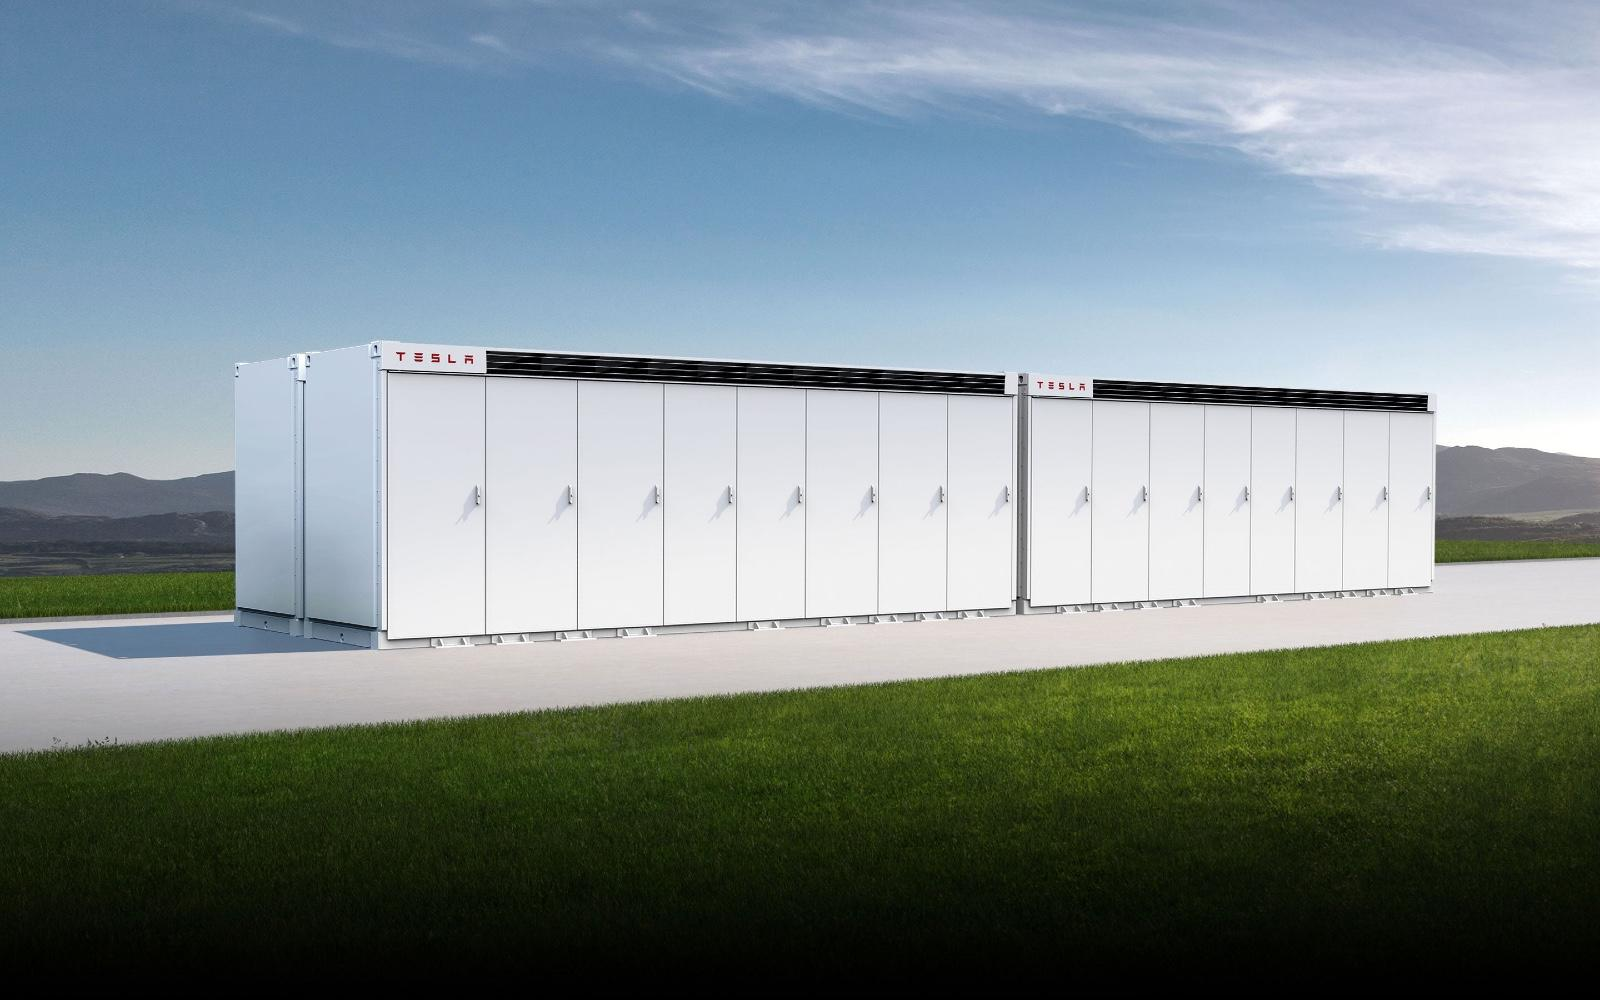 Tesla is building a 100MW energy storage project in Texas | Engadget - Engadget